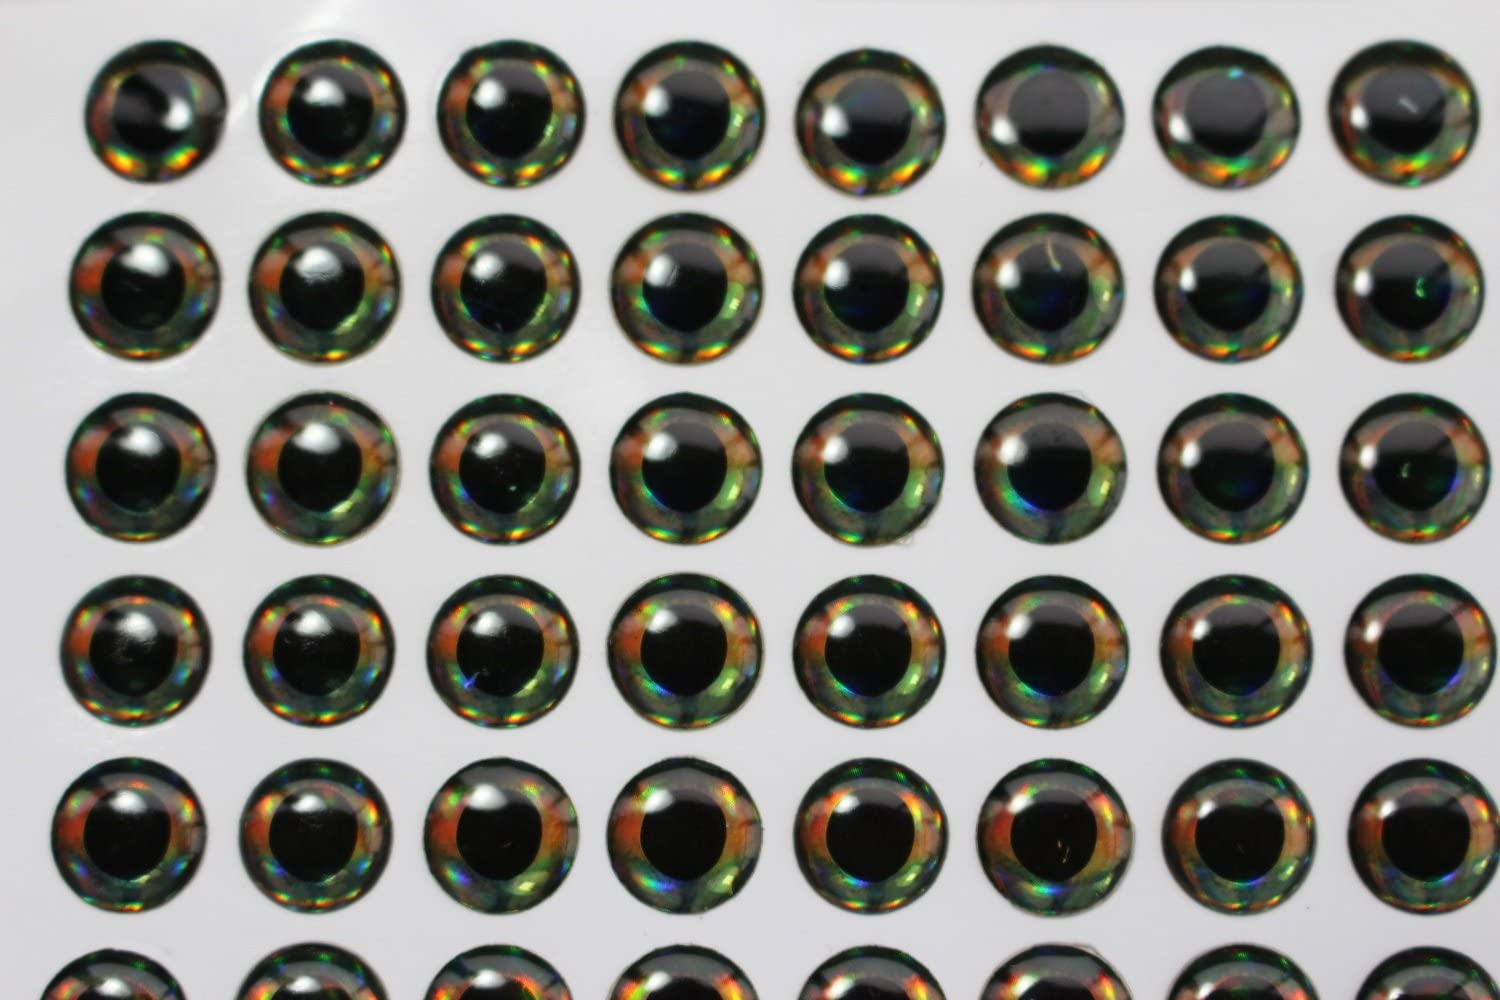 10mm 77pcs 4D fish eyes Realistic Holographic Baitfish Fly Making artificial eye